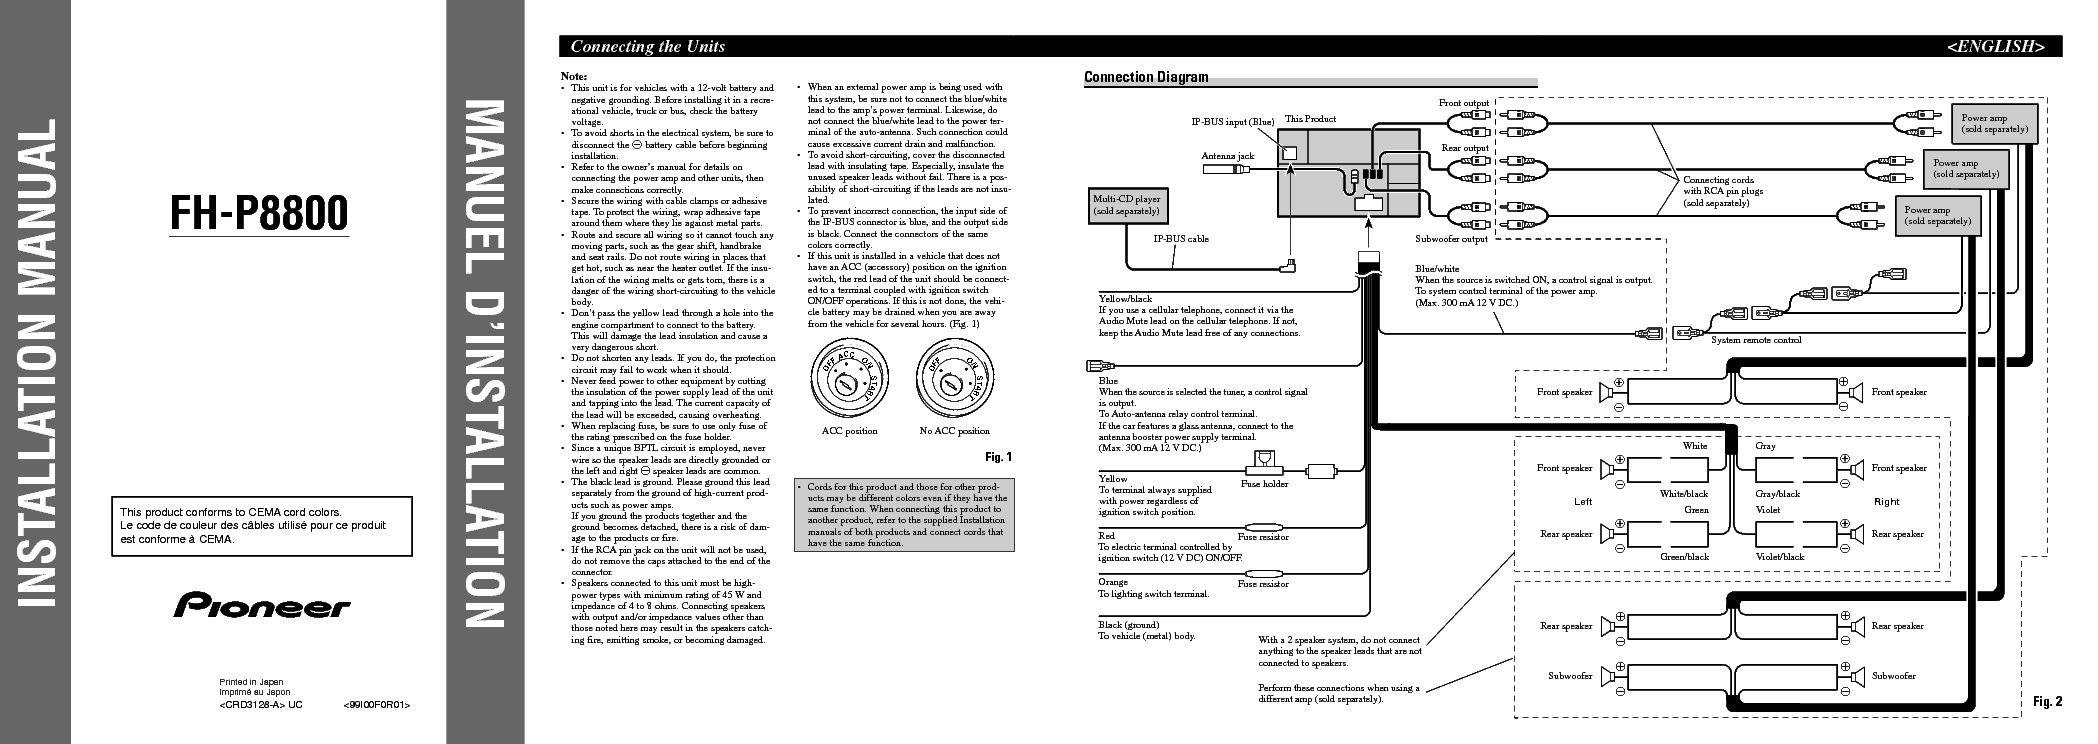 pioneer_fh p8800_im.pdf_1 pioneer keh 5300,5301,5200,5250 service manual download pioneer fh-p800bt wiring diagram at gsmportal.co